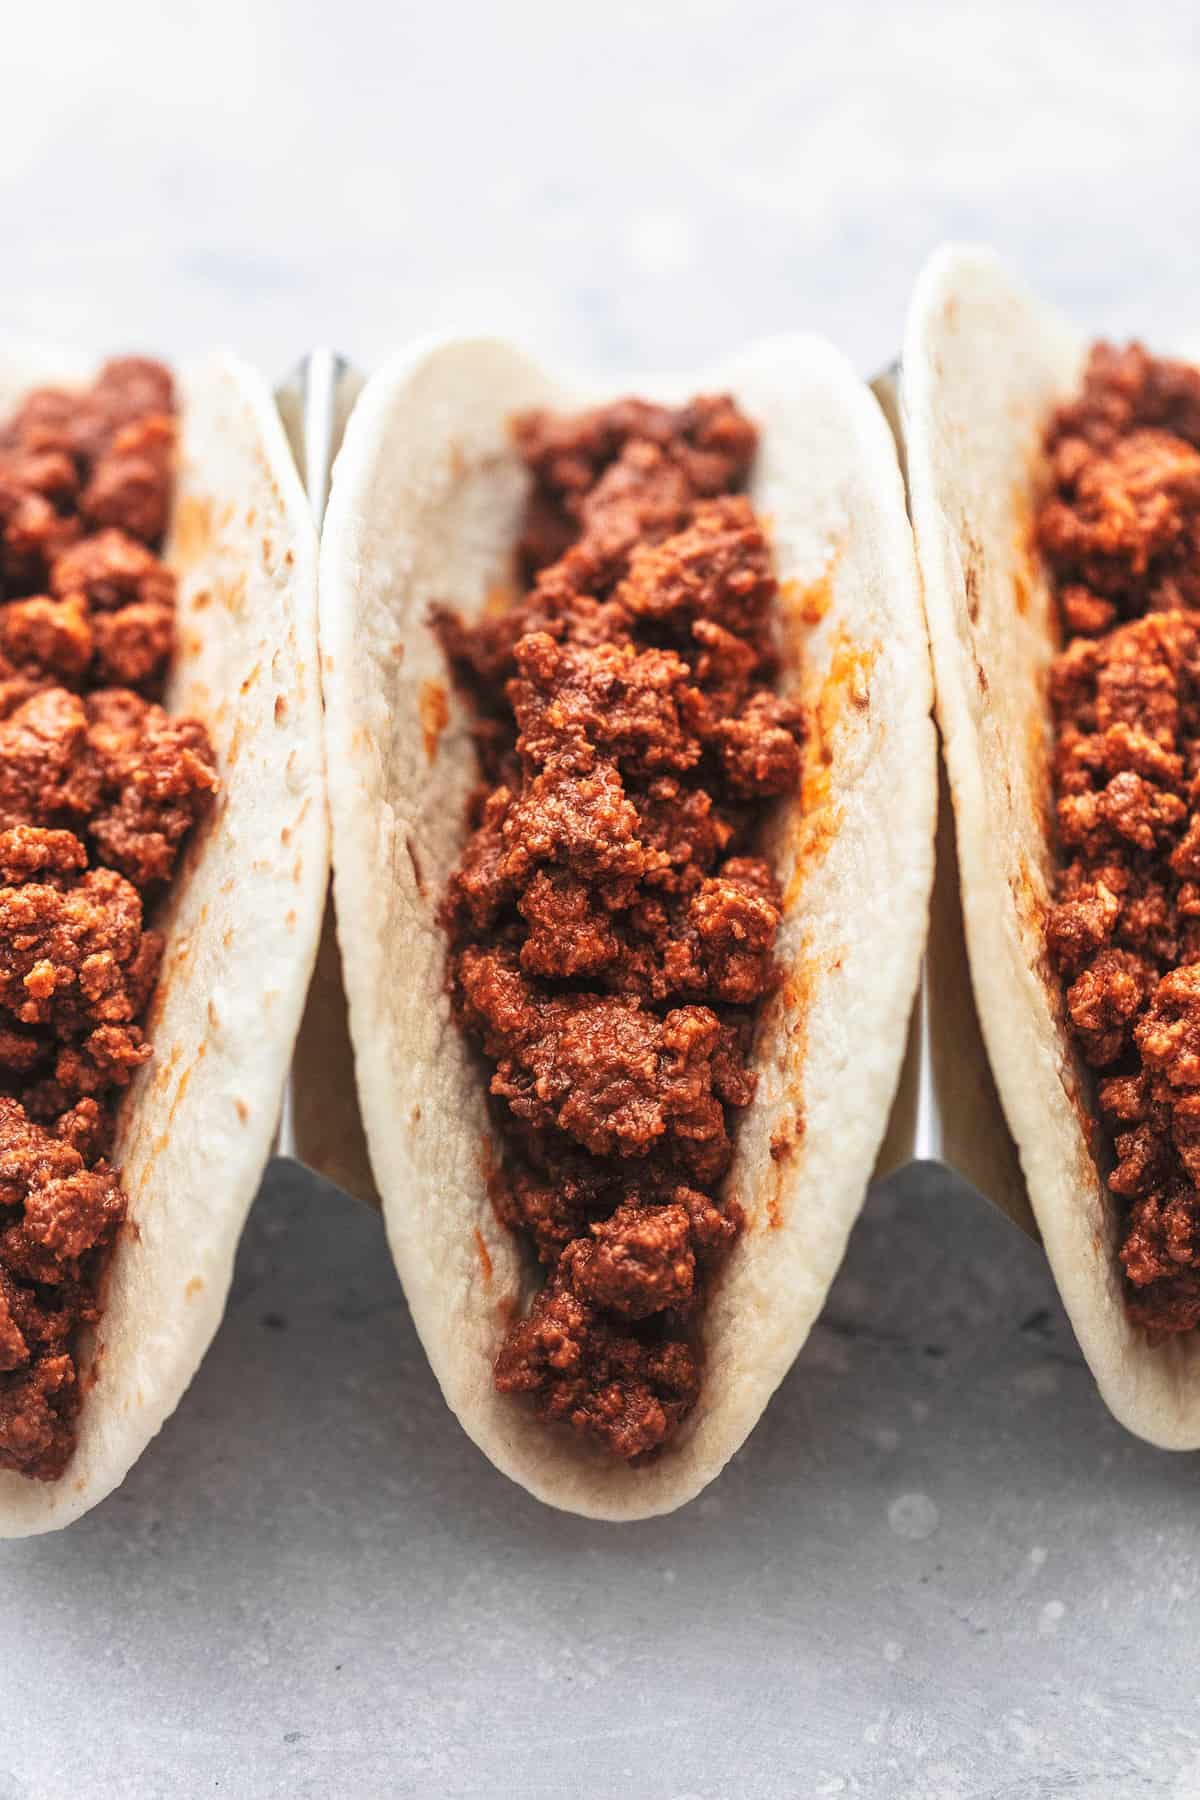 Best Ever Ground Beef Tacos easy ground beef dinner recipe | lecremedelacrumb.com